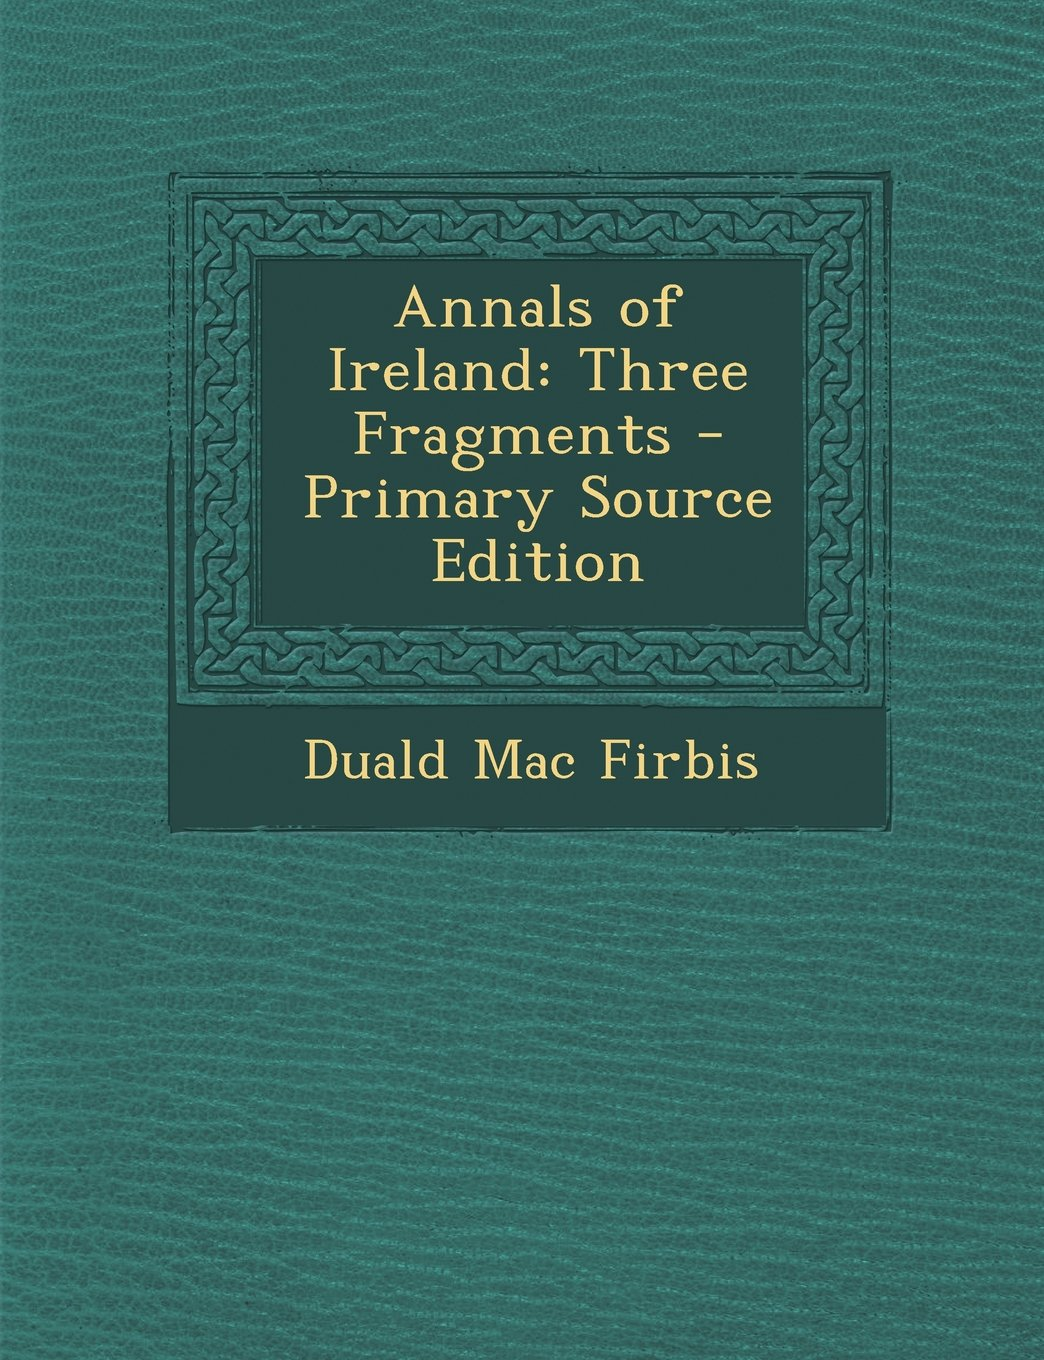 Annals of Ireland: Three Fragments - Primary Source Edition PDF Text fb2 ebook